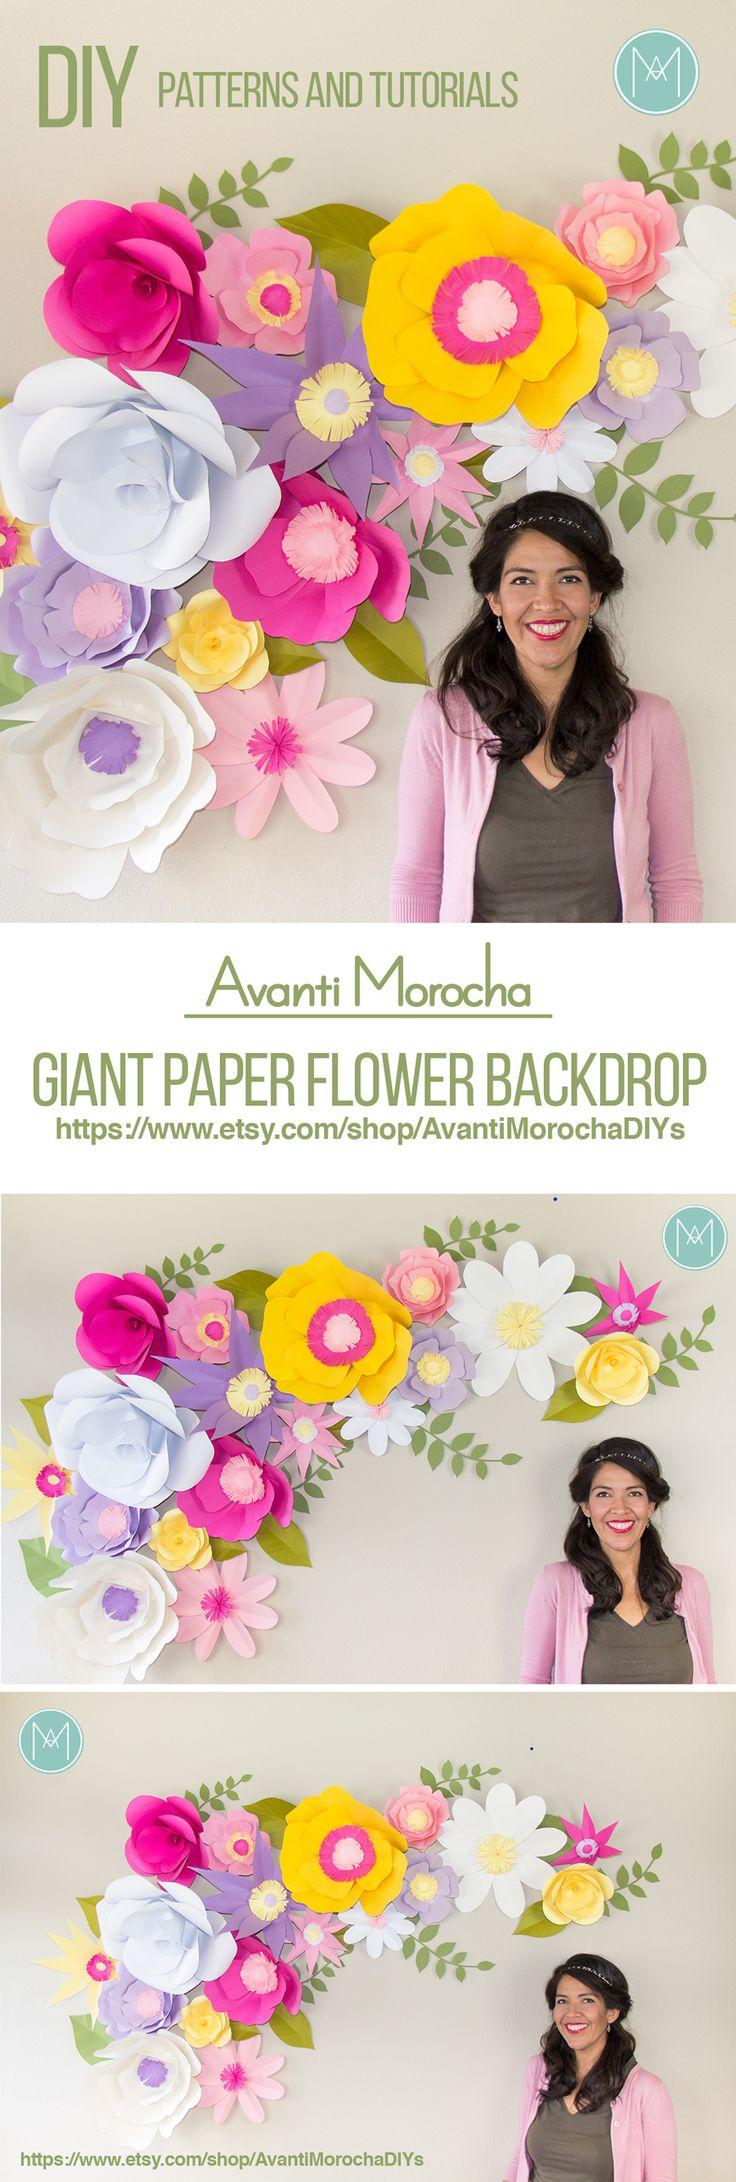 Full Giant Paper Flower Backdrop Patterns And Video Tutorials 2574123 Weddbook